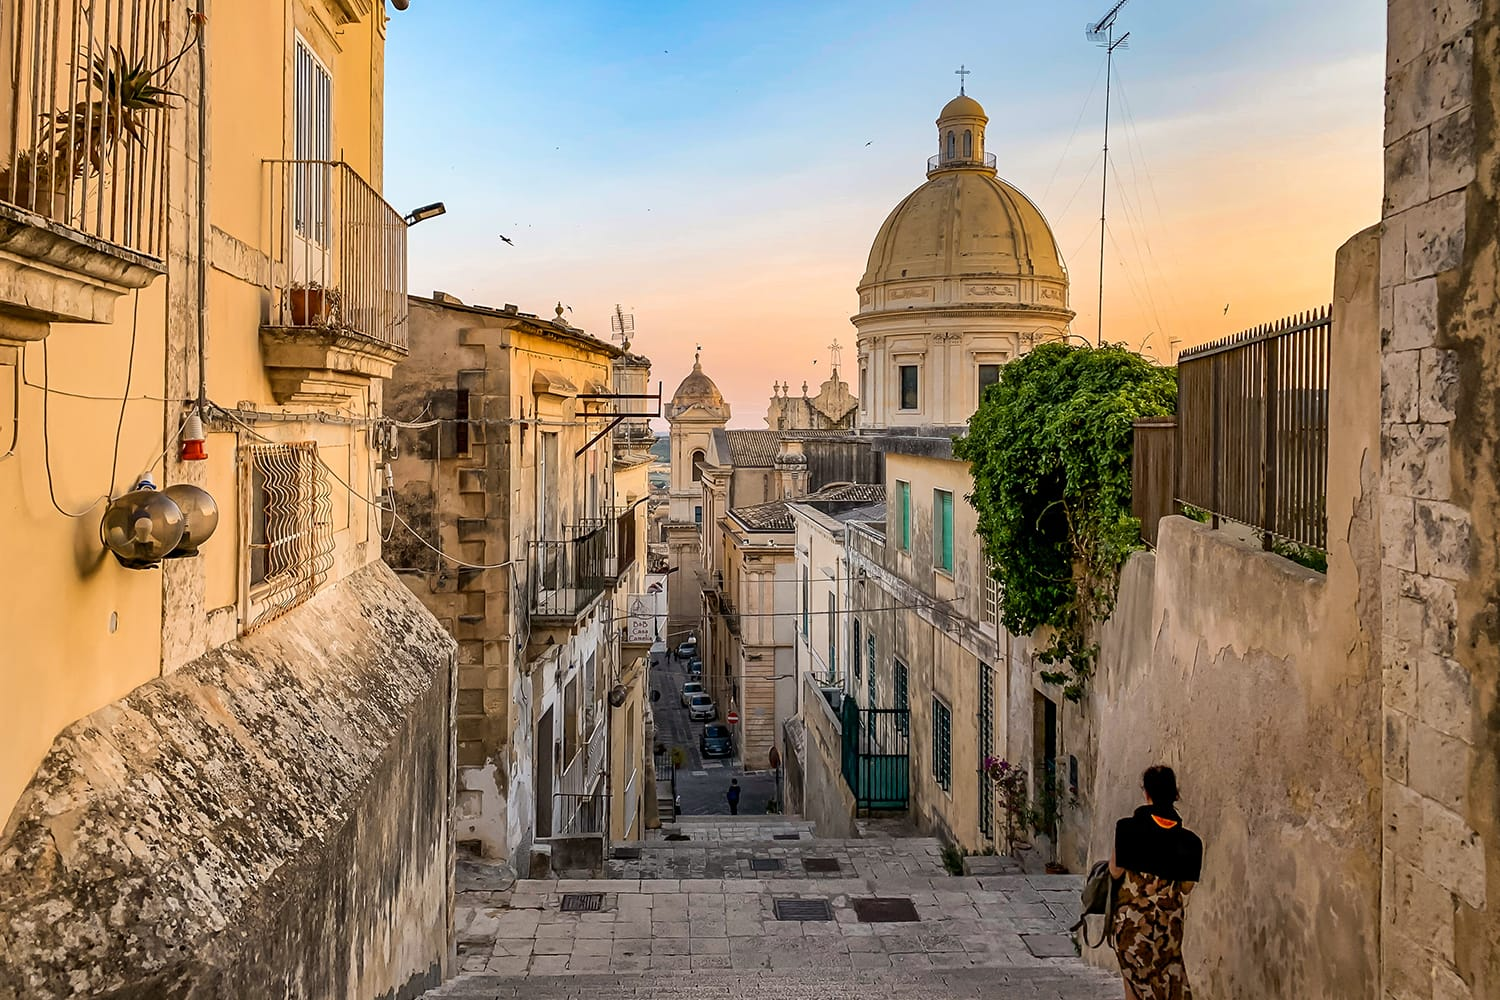 View of beautiful and typical streets and stairs in the baroque town of Noto in the province of Syracuse in Sicily, Italy